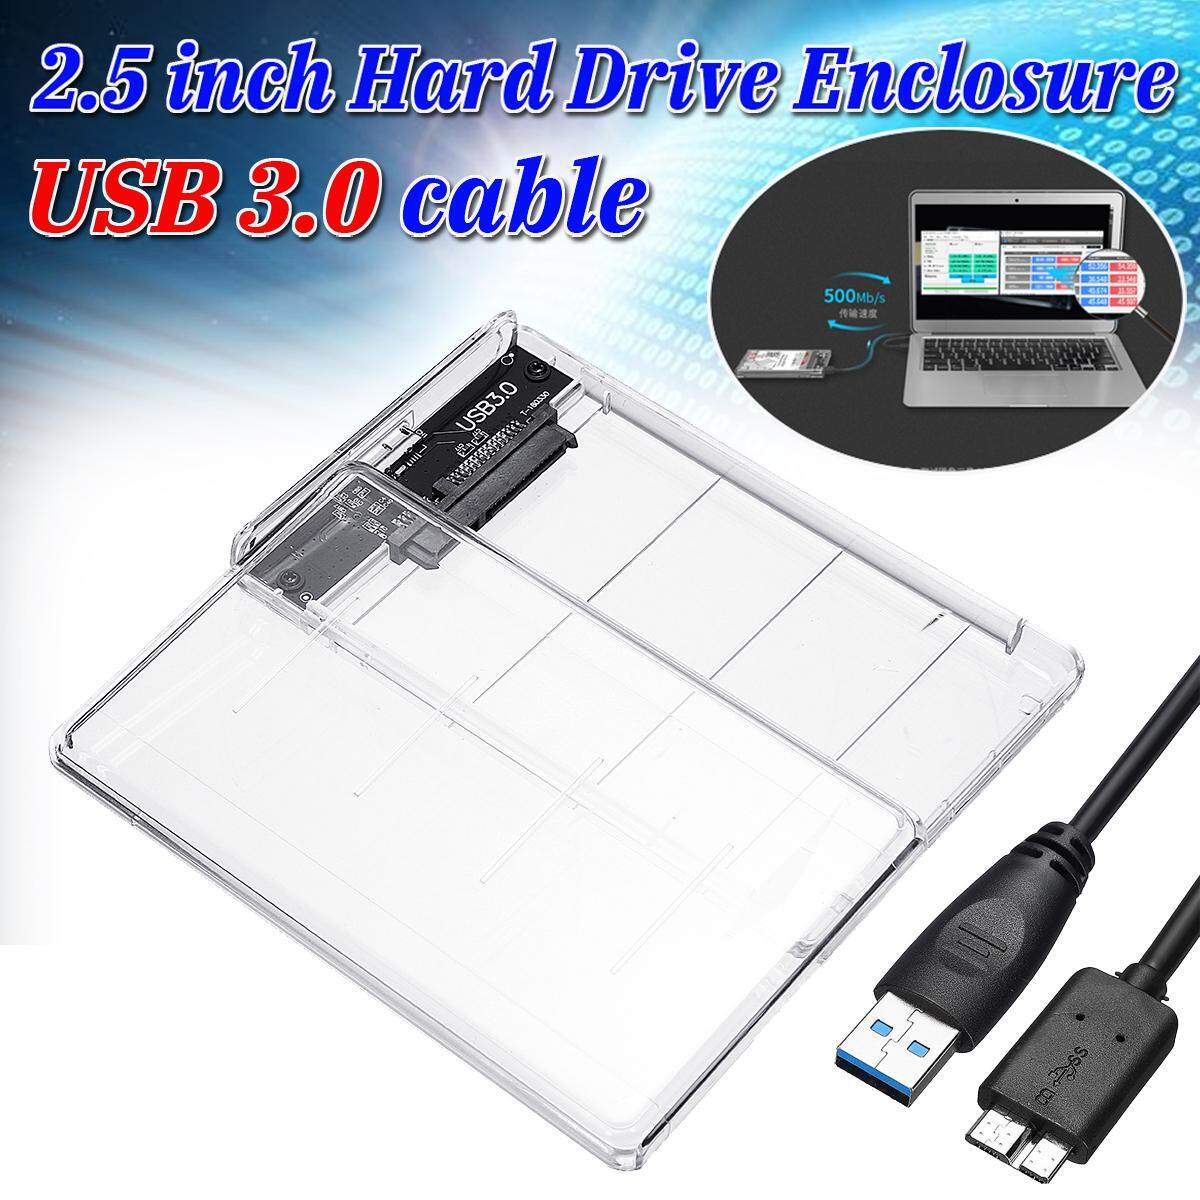 "USB 3.0 to SATA Hard Drive Enclosure Caddy Case For 2.5"" Inch HDD / SSD"